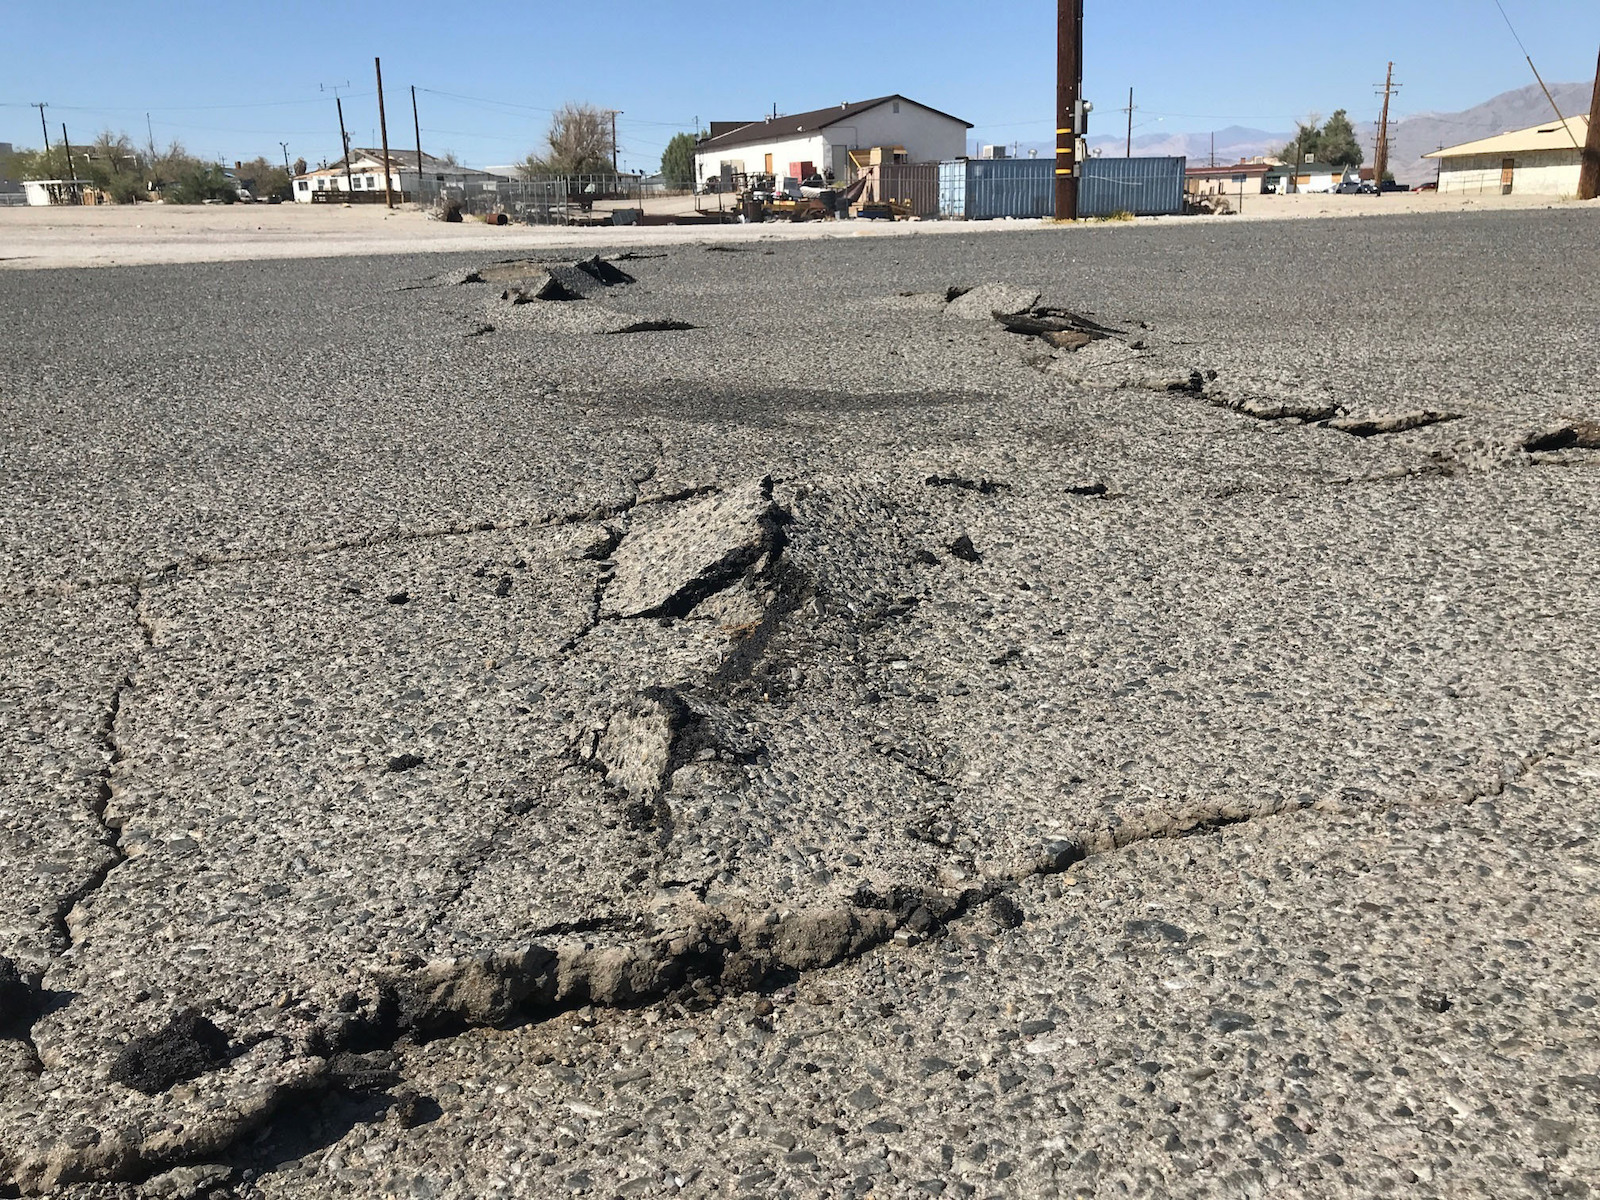 Earthquakes alert Californians to be ready for dreaded ...